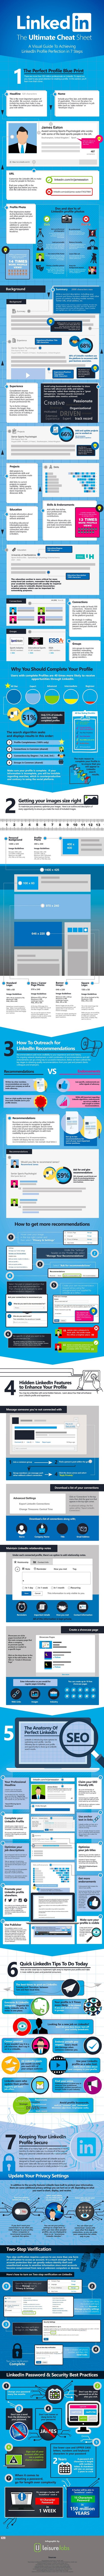 How to Craft the Perfect LinkedIn Profile: A Comprehensive Guide #Infographic | Social Media, Marketing & Communication | Scoop.it